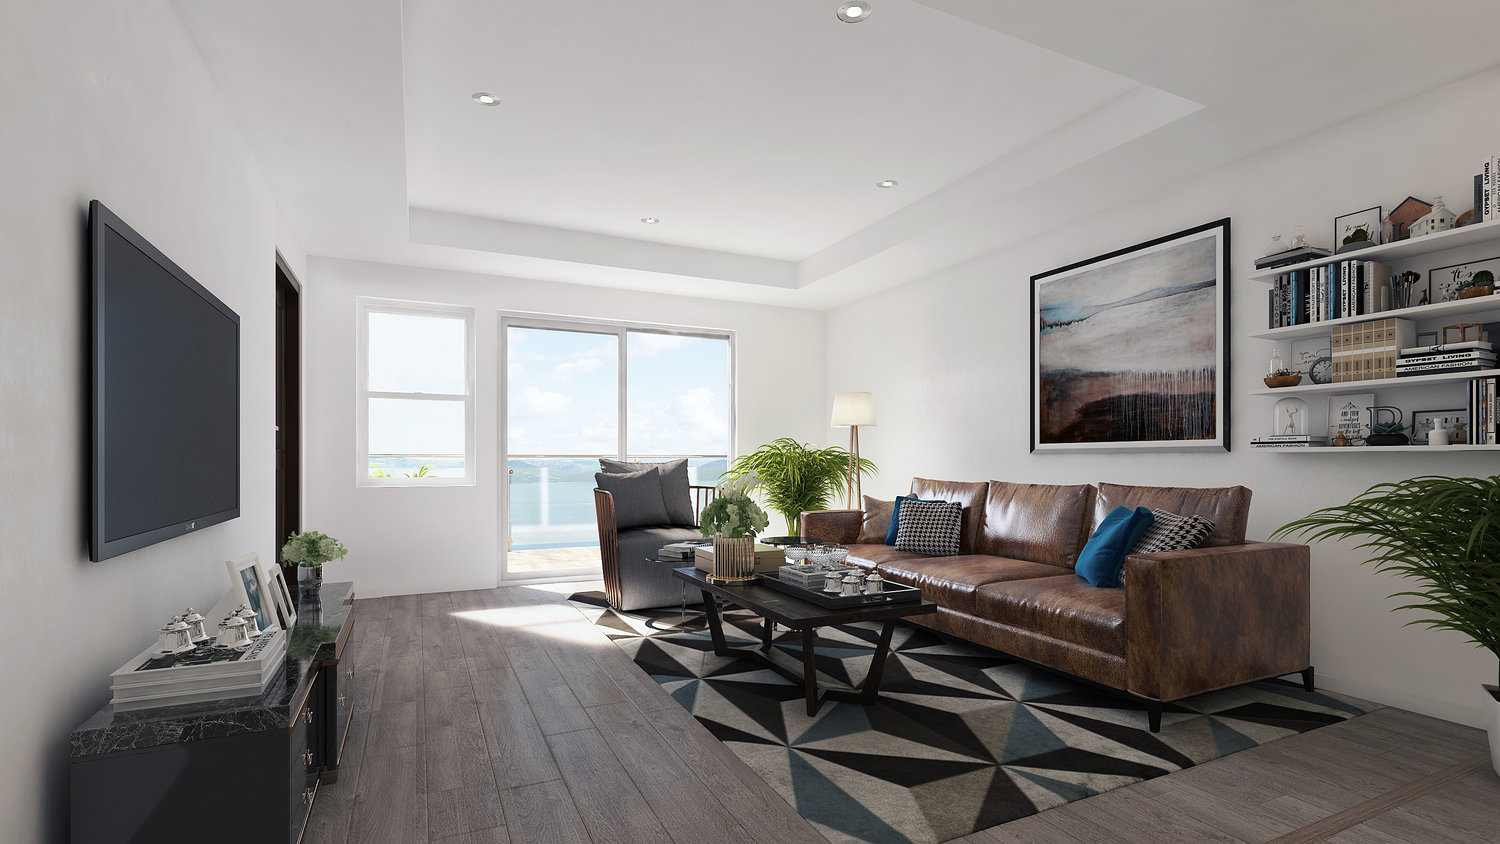 A rendering of the living room of one of the apartments.